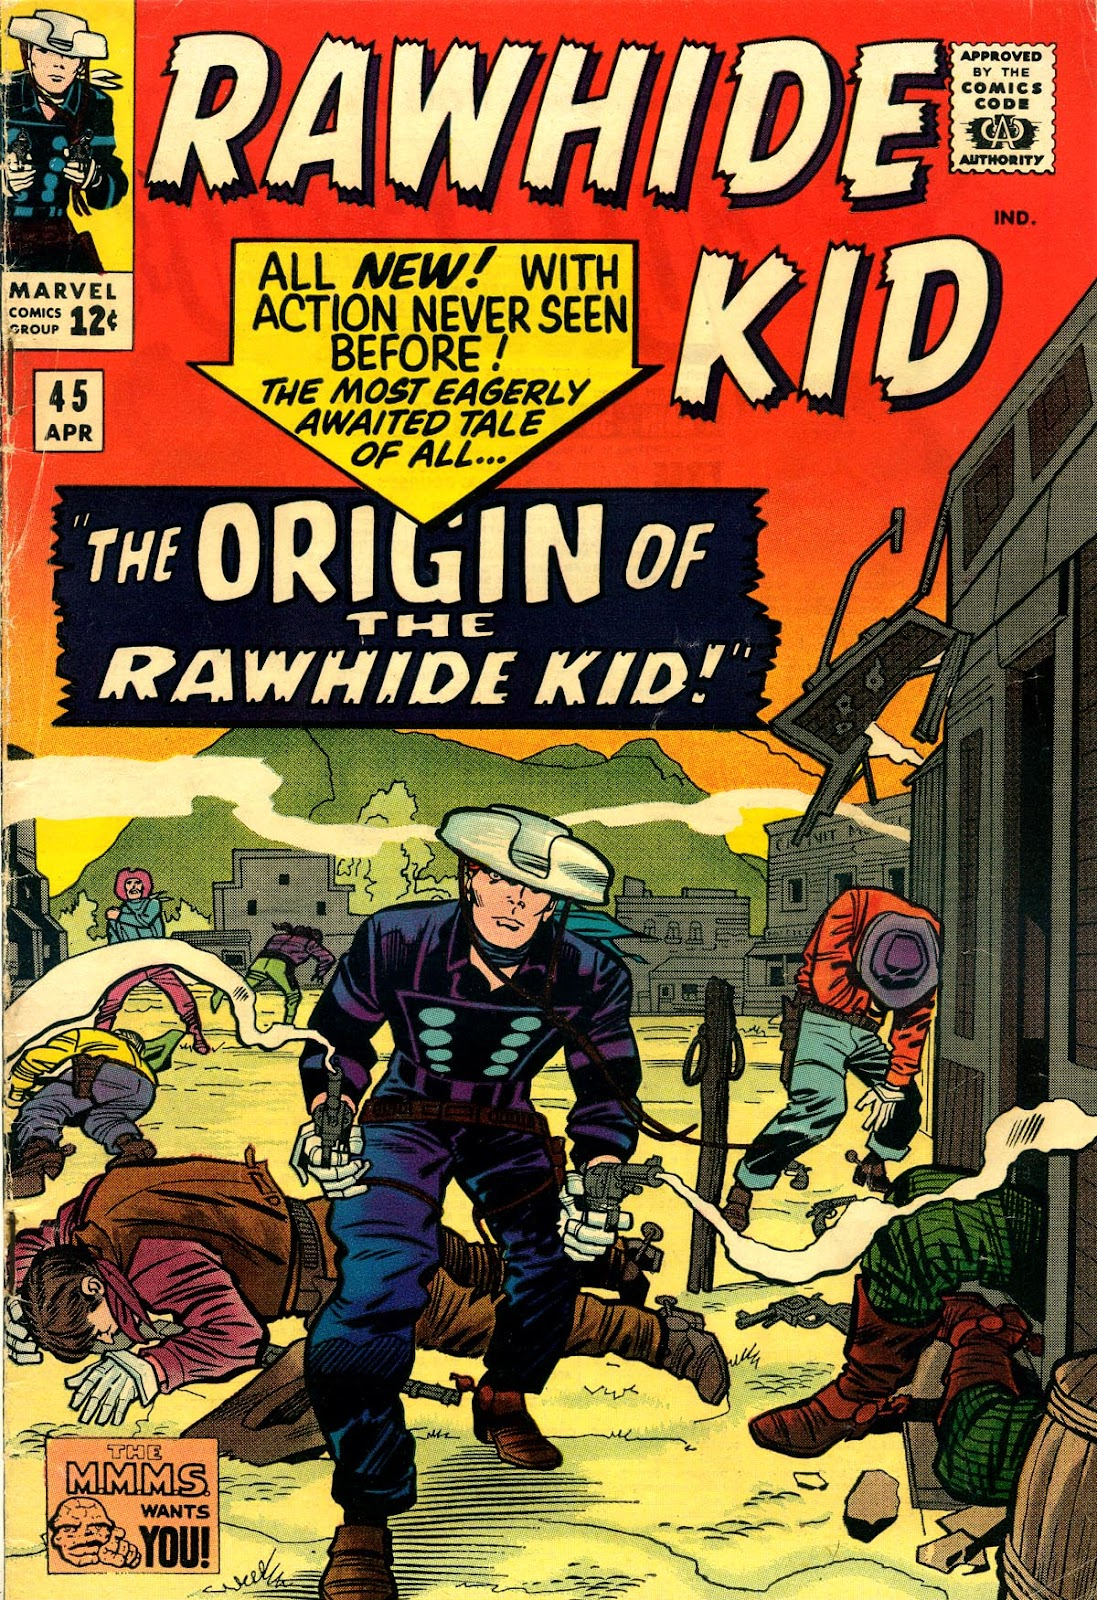 The Rawhide Kid (1955) issue 45 - Page 1